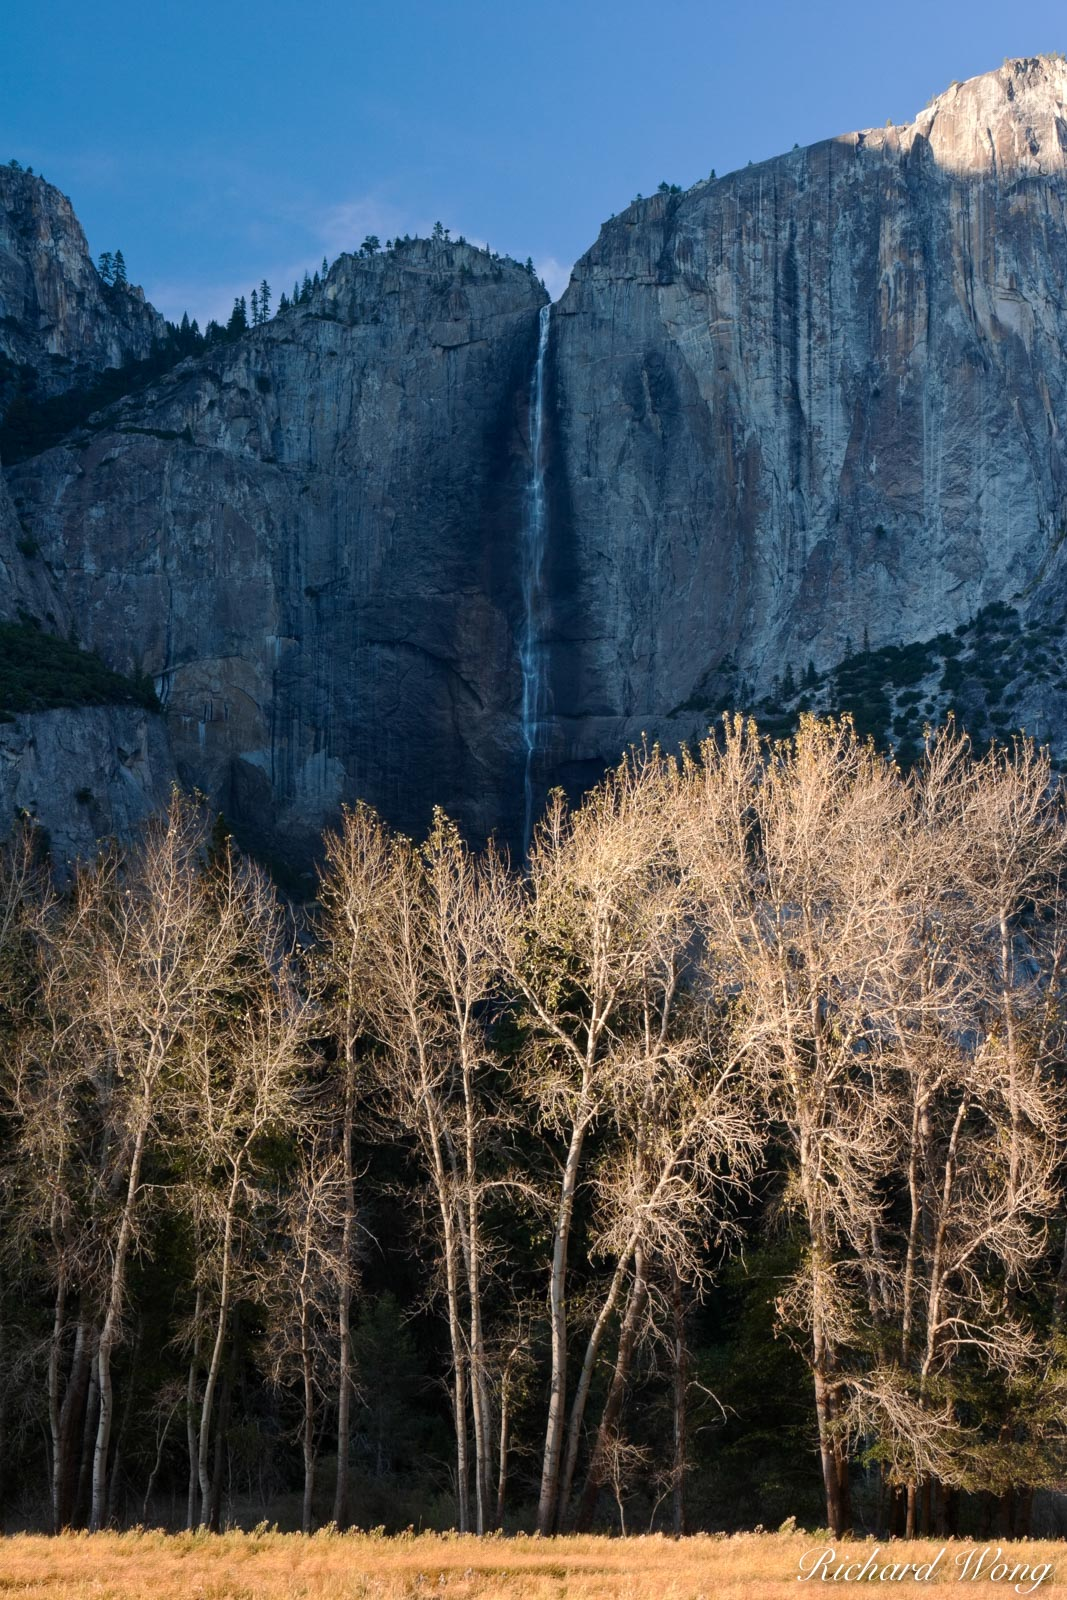 Illuminated Cottonwood Trees with Yosemite Falls in Shadow at Cook's Meadow, Yosemite National Park, California, photo, photo